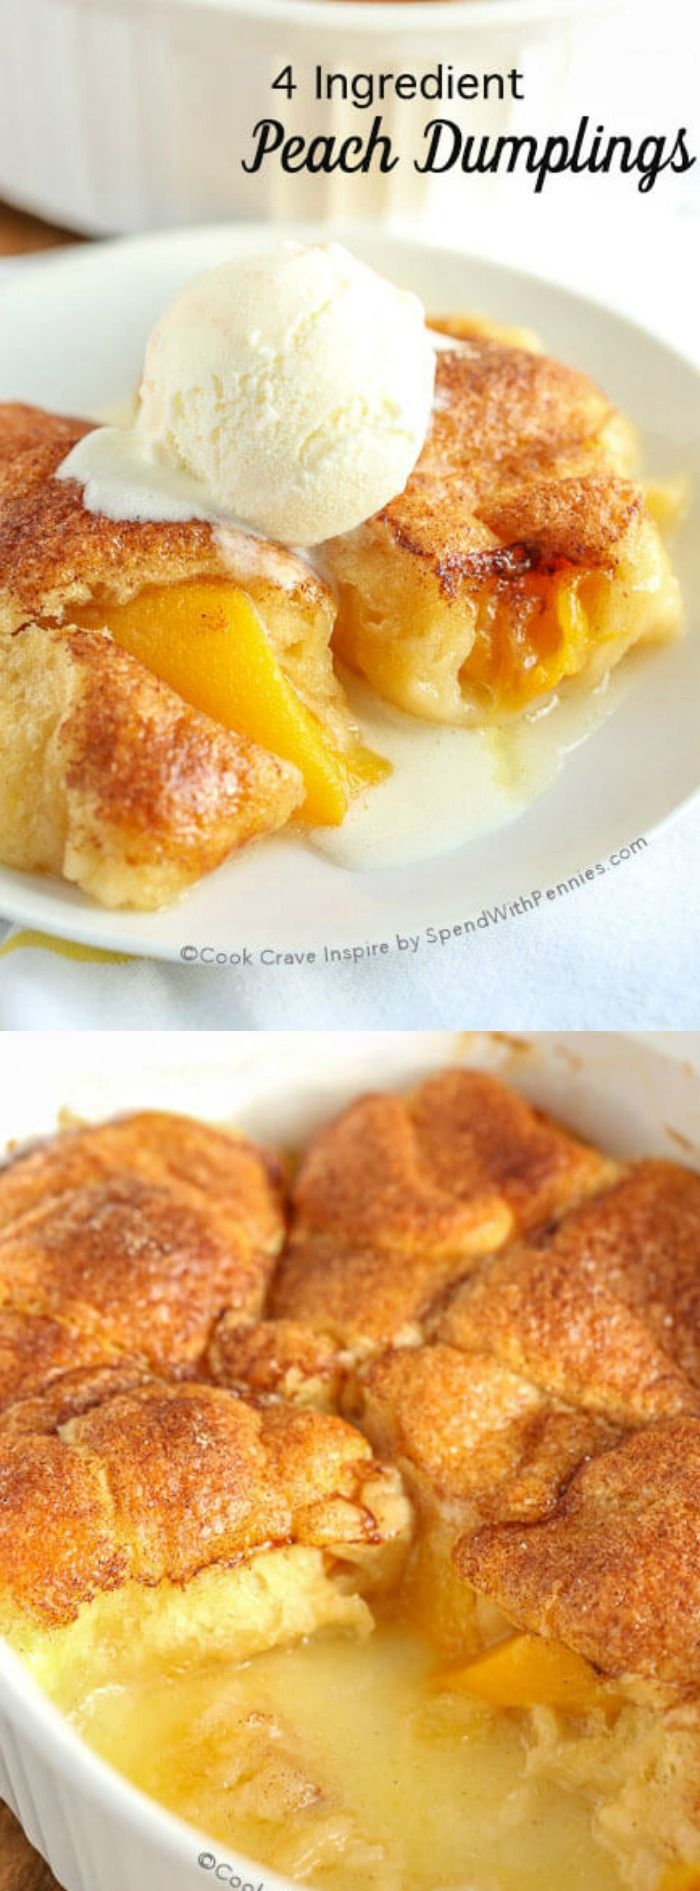 These 4 Ingredient Peach Dumplings from Spend with Pennies are the ultimate dessert! They come together in a flash and require only the simplest of ingredients, which you likely already have on hand in your pantry!